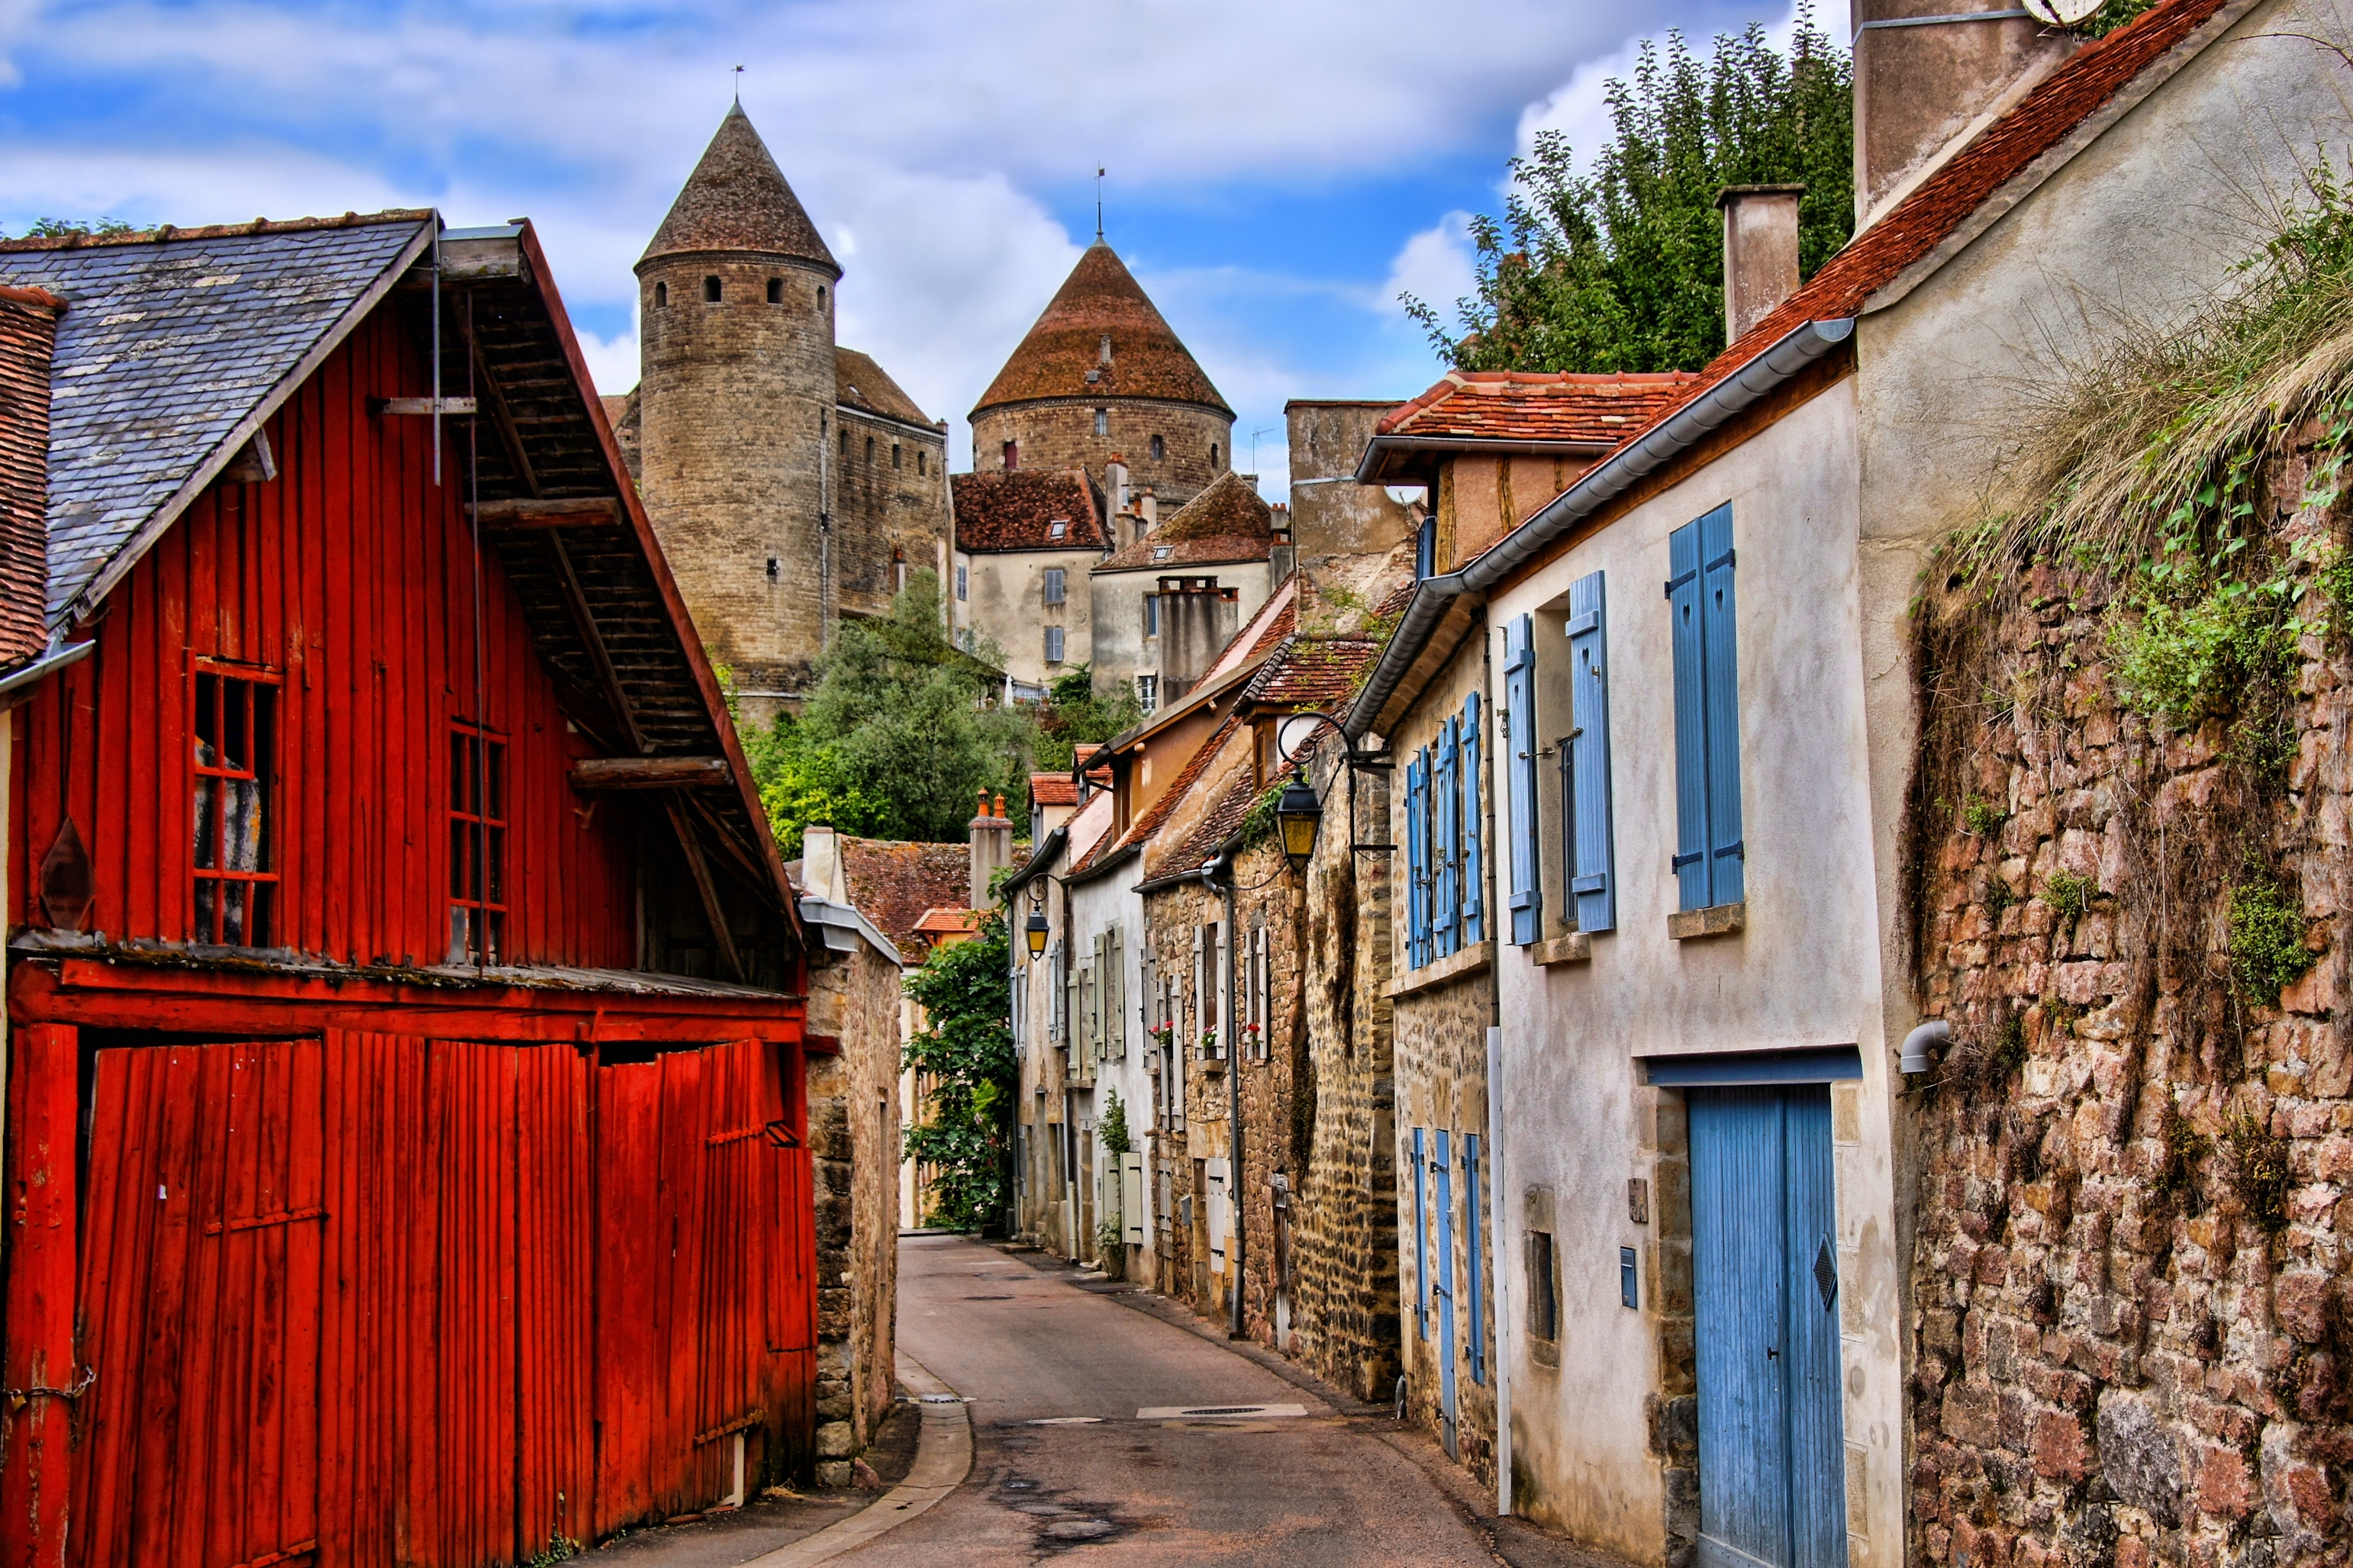 Old picturesque lane with medieval towers in the village of Semur en Auxois, Burgundy, France (iStock)